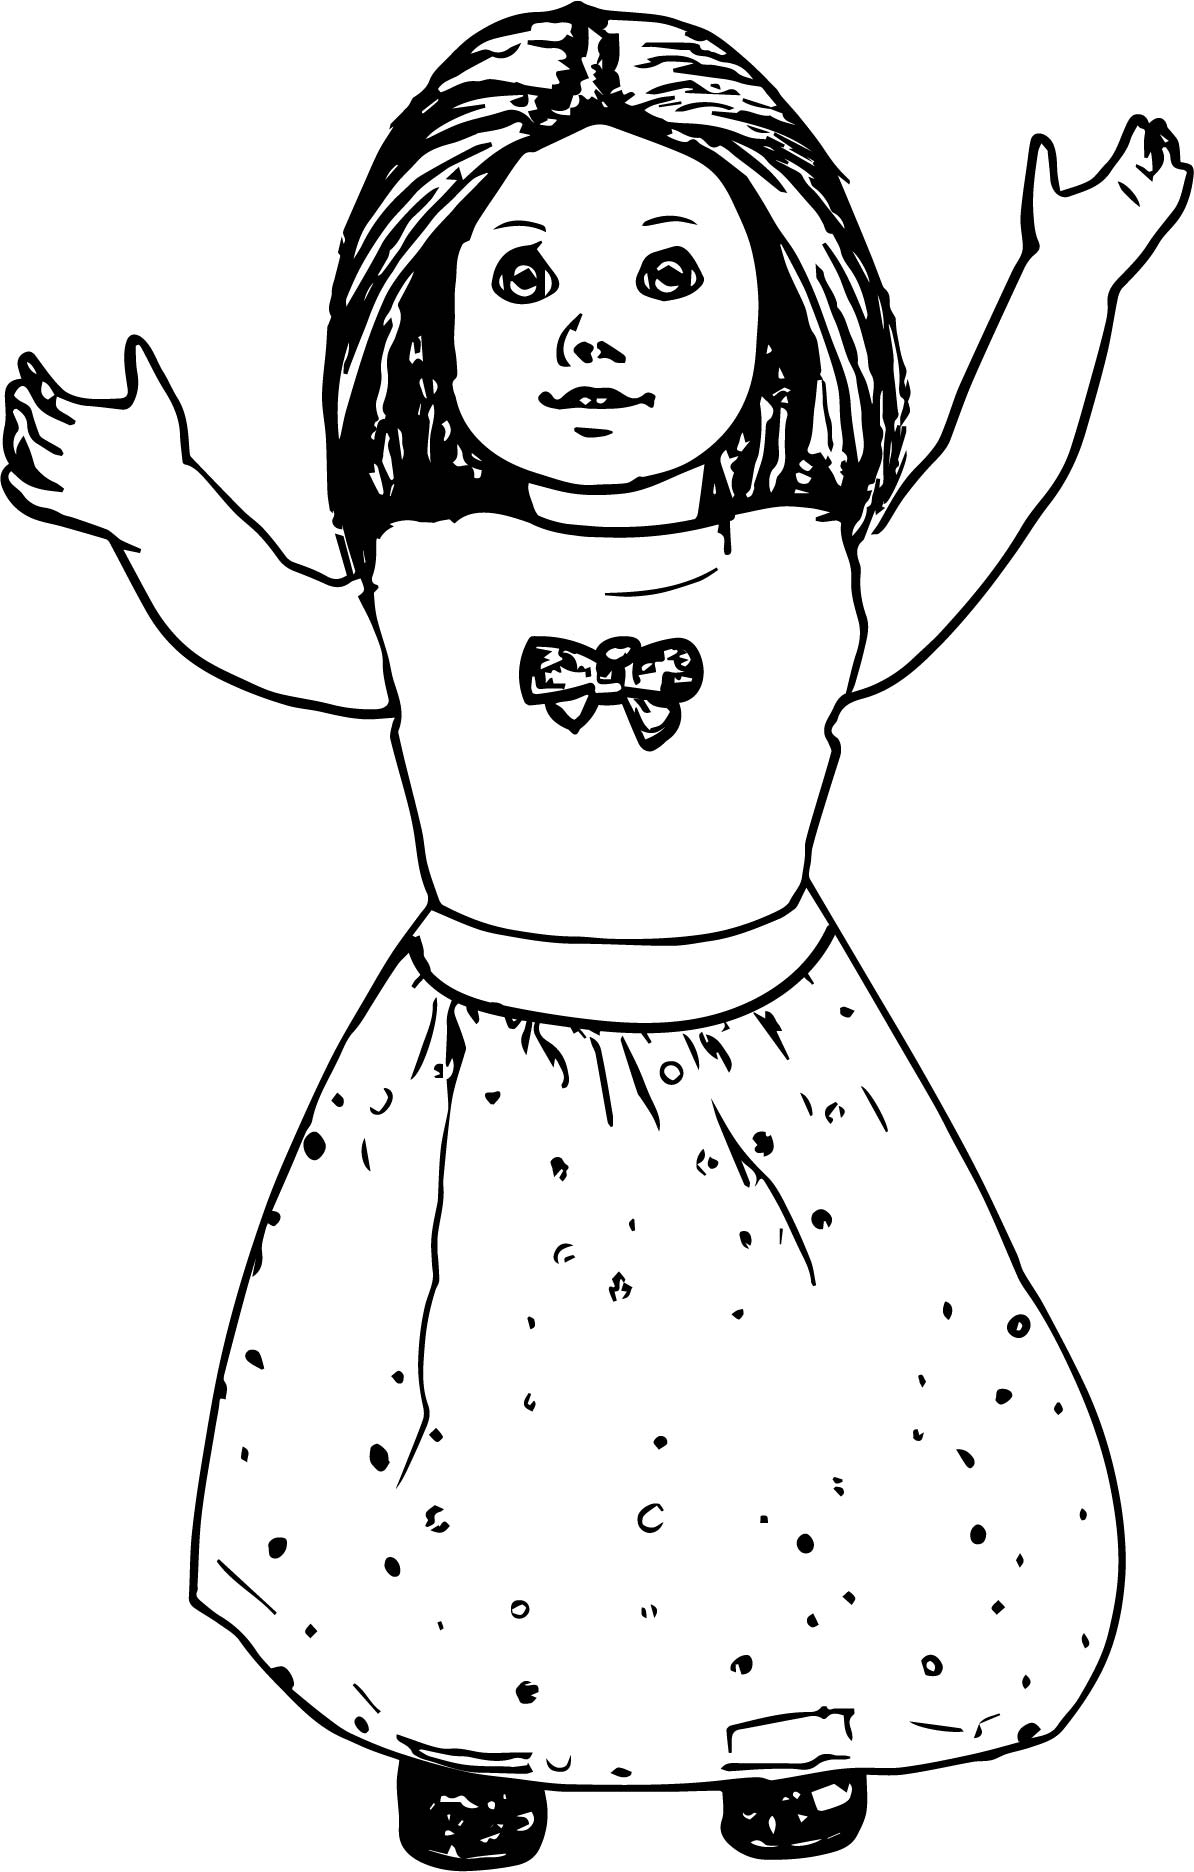 Print American Girl Print Free Printable Coloring Pages For Girls Novocom Top